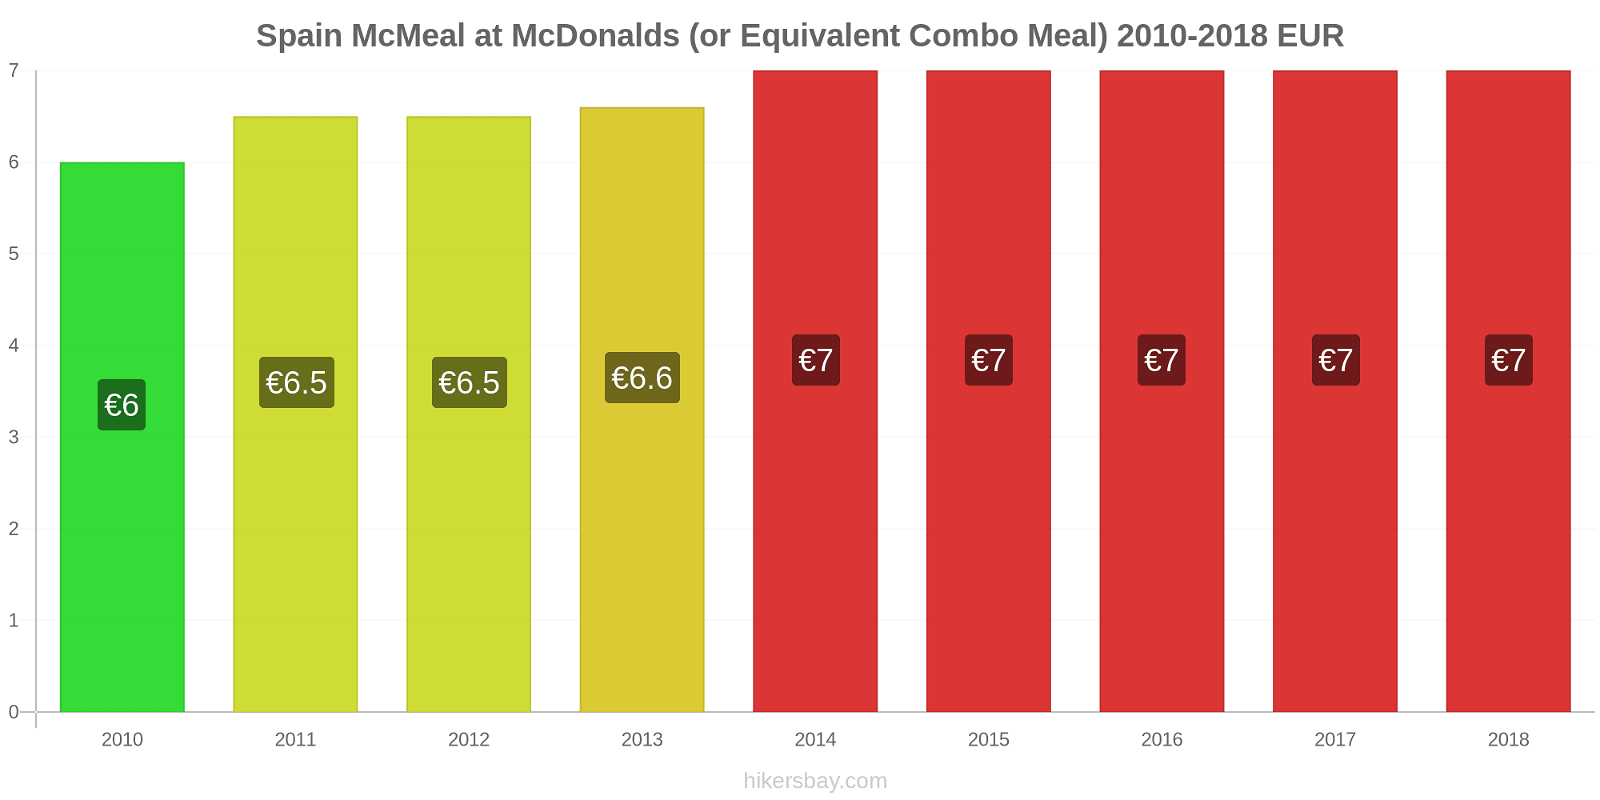 Spain price changes McMeal at McDonalds (or Equivalent Combo Meal) hikersbay.com